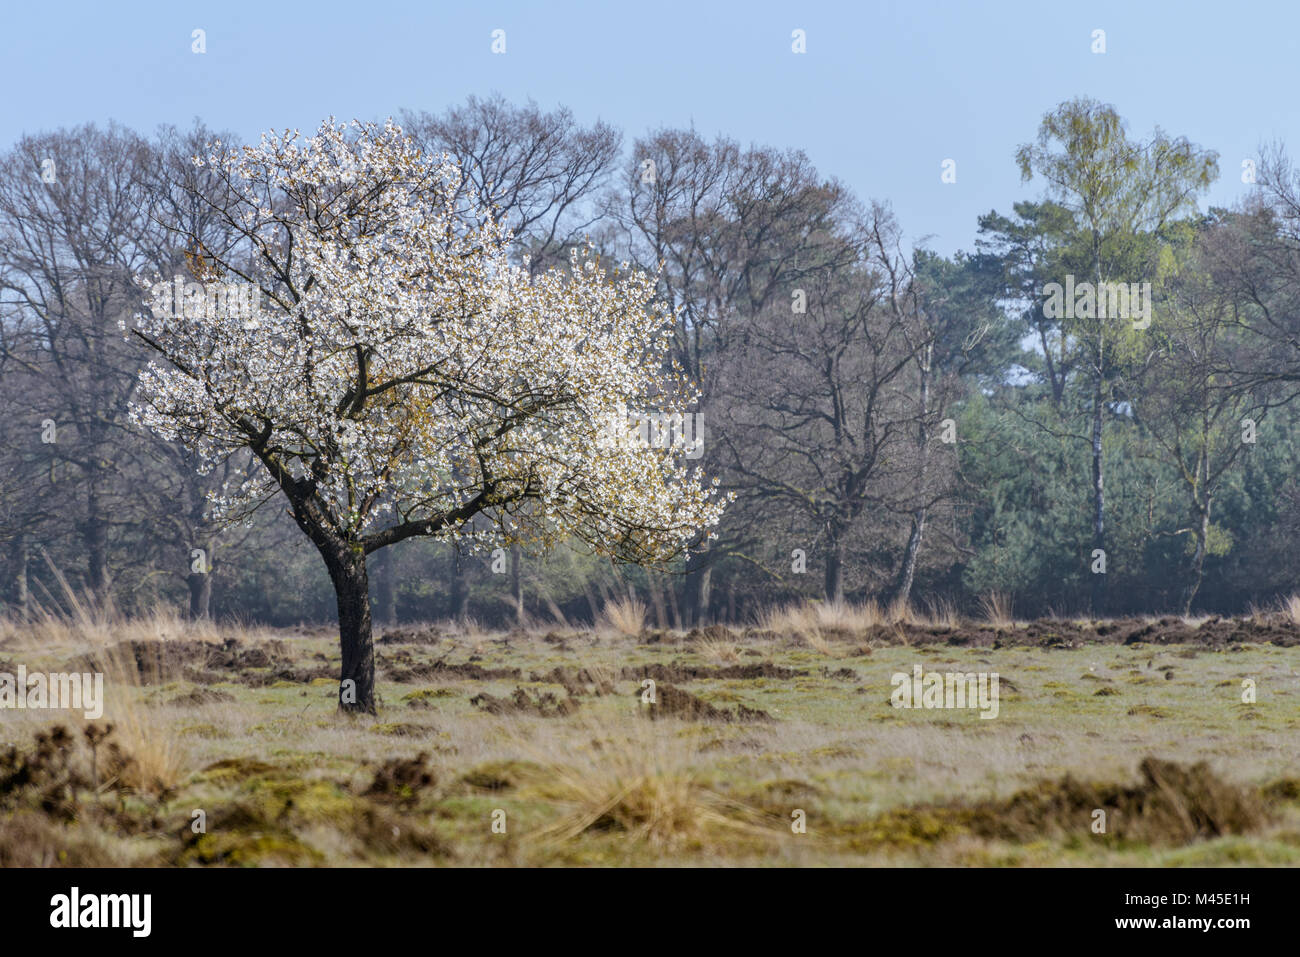 A fruit tree is in full bloom during early spring on the moor at the Veluwe in the Netherlands. - Stock Image